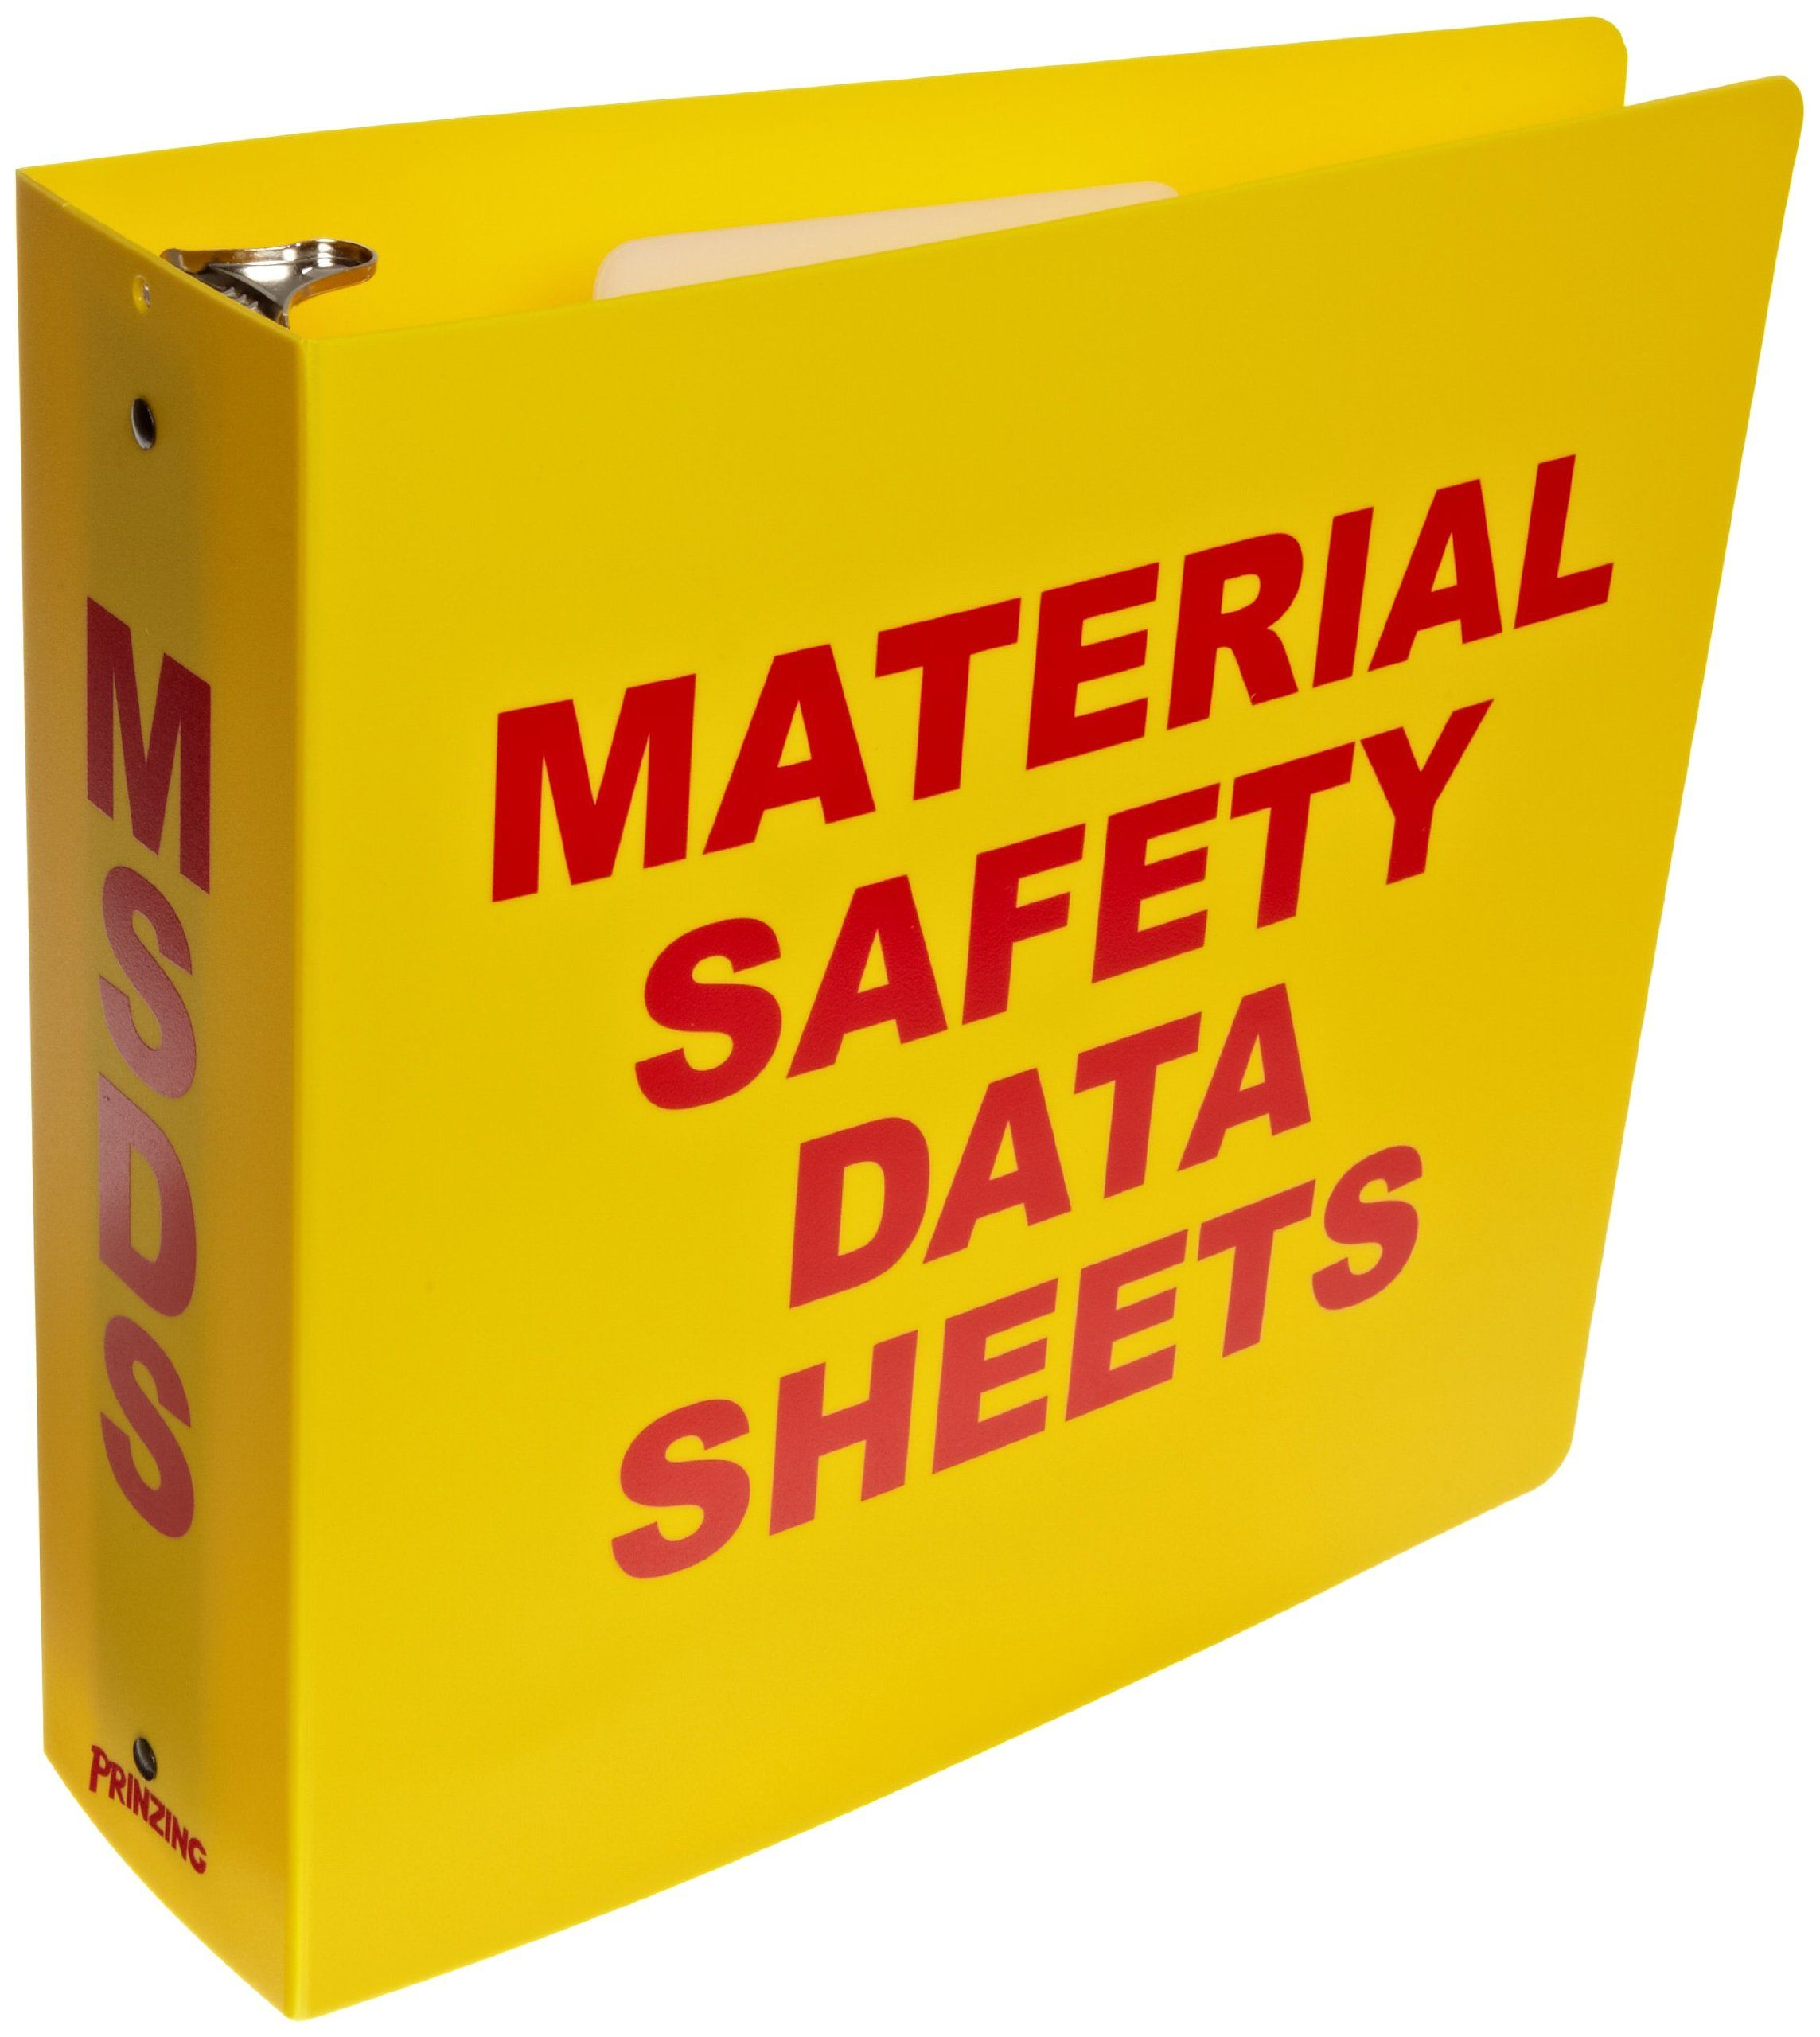 To take free sheets use the totally nice msds online search. Programmed by us to find msds online as well as sds sheets   to download. Please search best Online MSDS Database and Trained Online MSDS Search Engine. For more details click here http://msdsdigital.com/find-msds-sheets-use-totally-awesome-msds-online-search